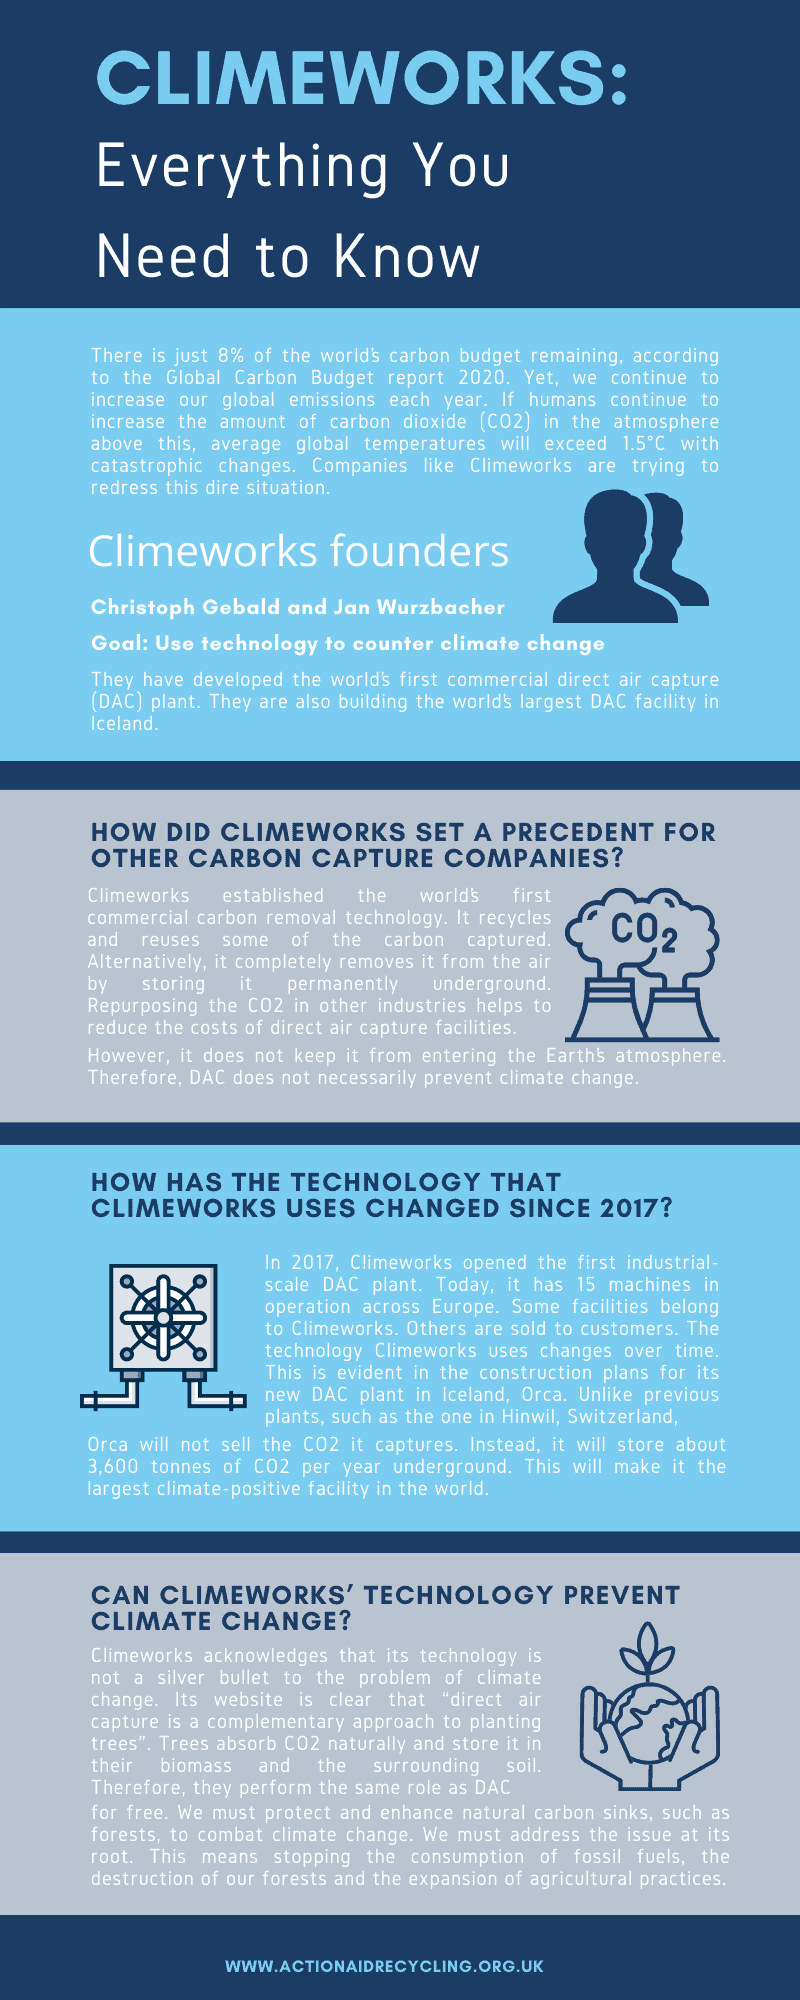 Climeworks: Everything You Need to Know graphic